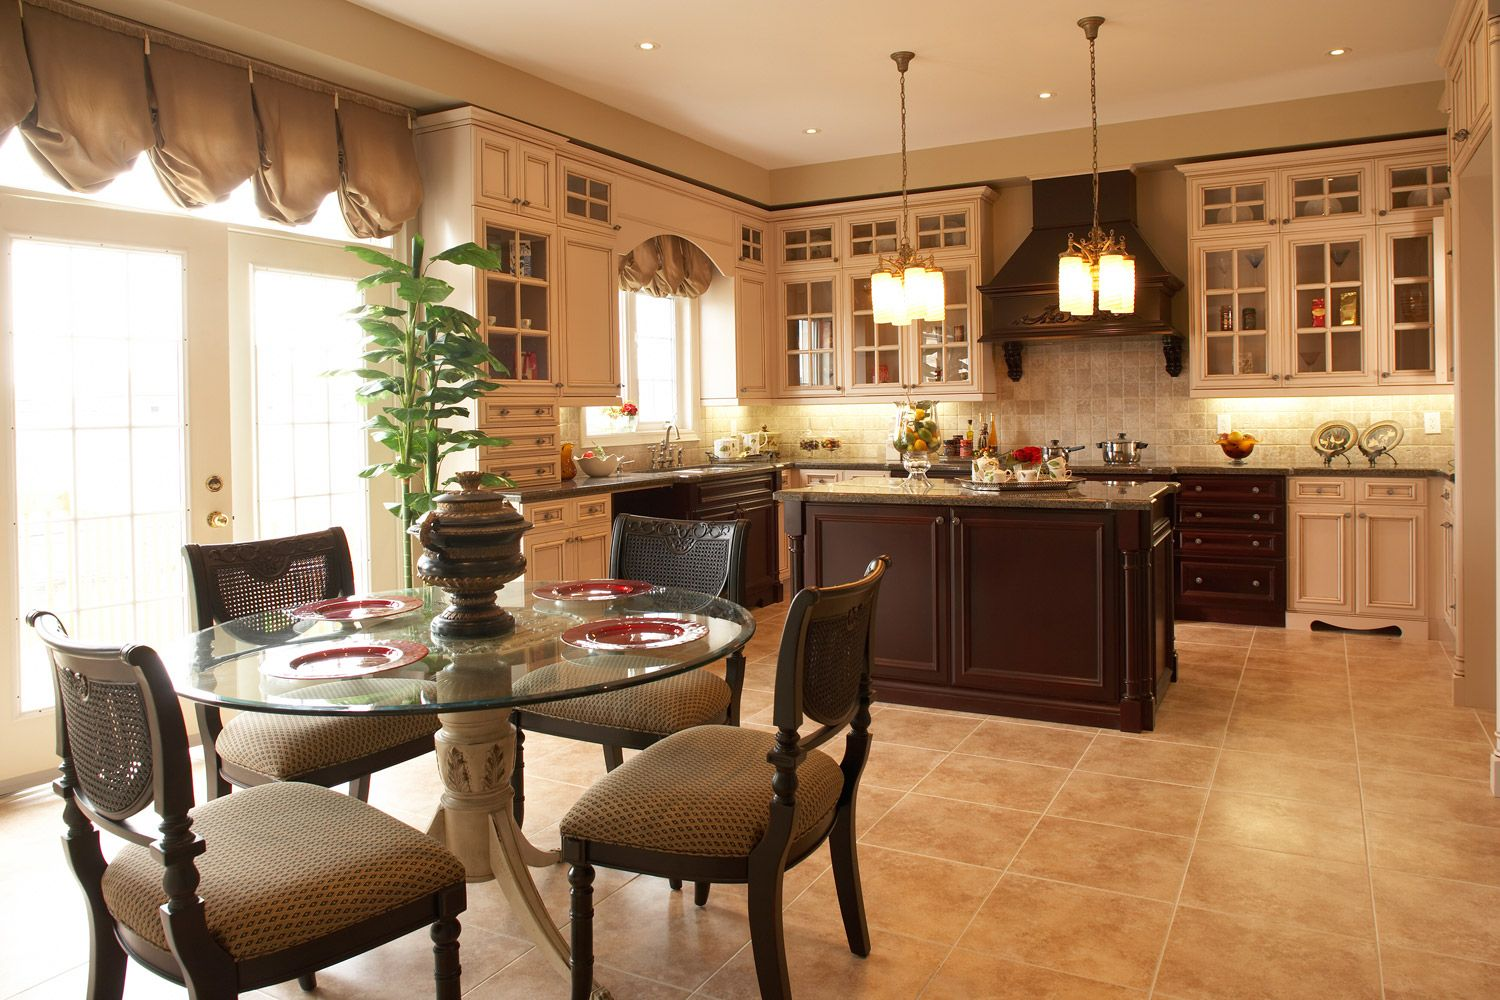 Model Homes Images Interior Gl Homes Photo Gallery Of Models Model Home Is Full Of